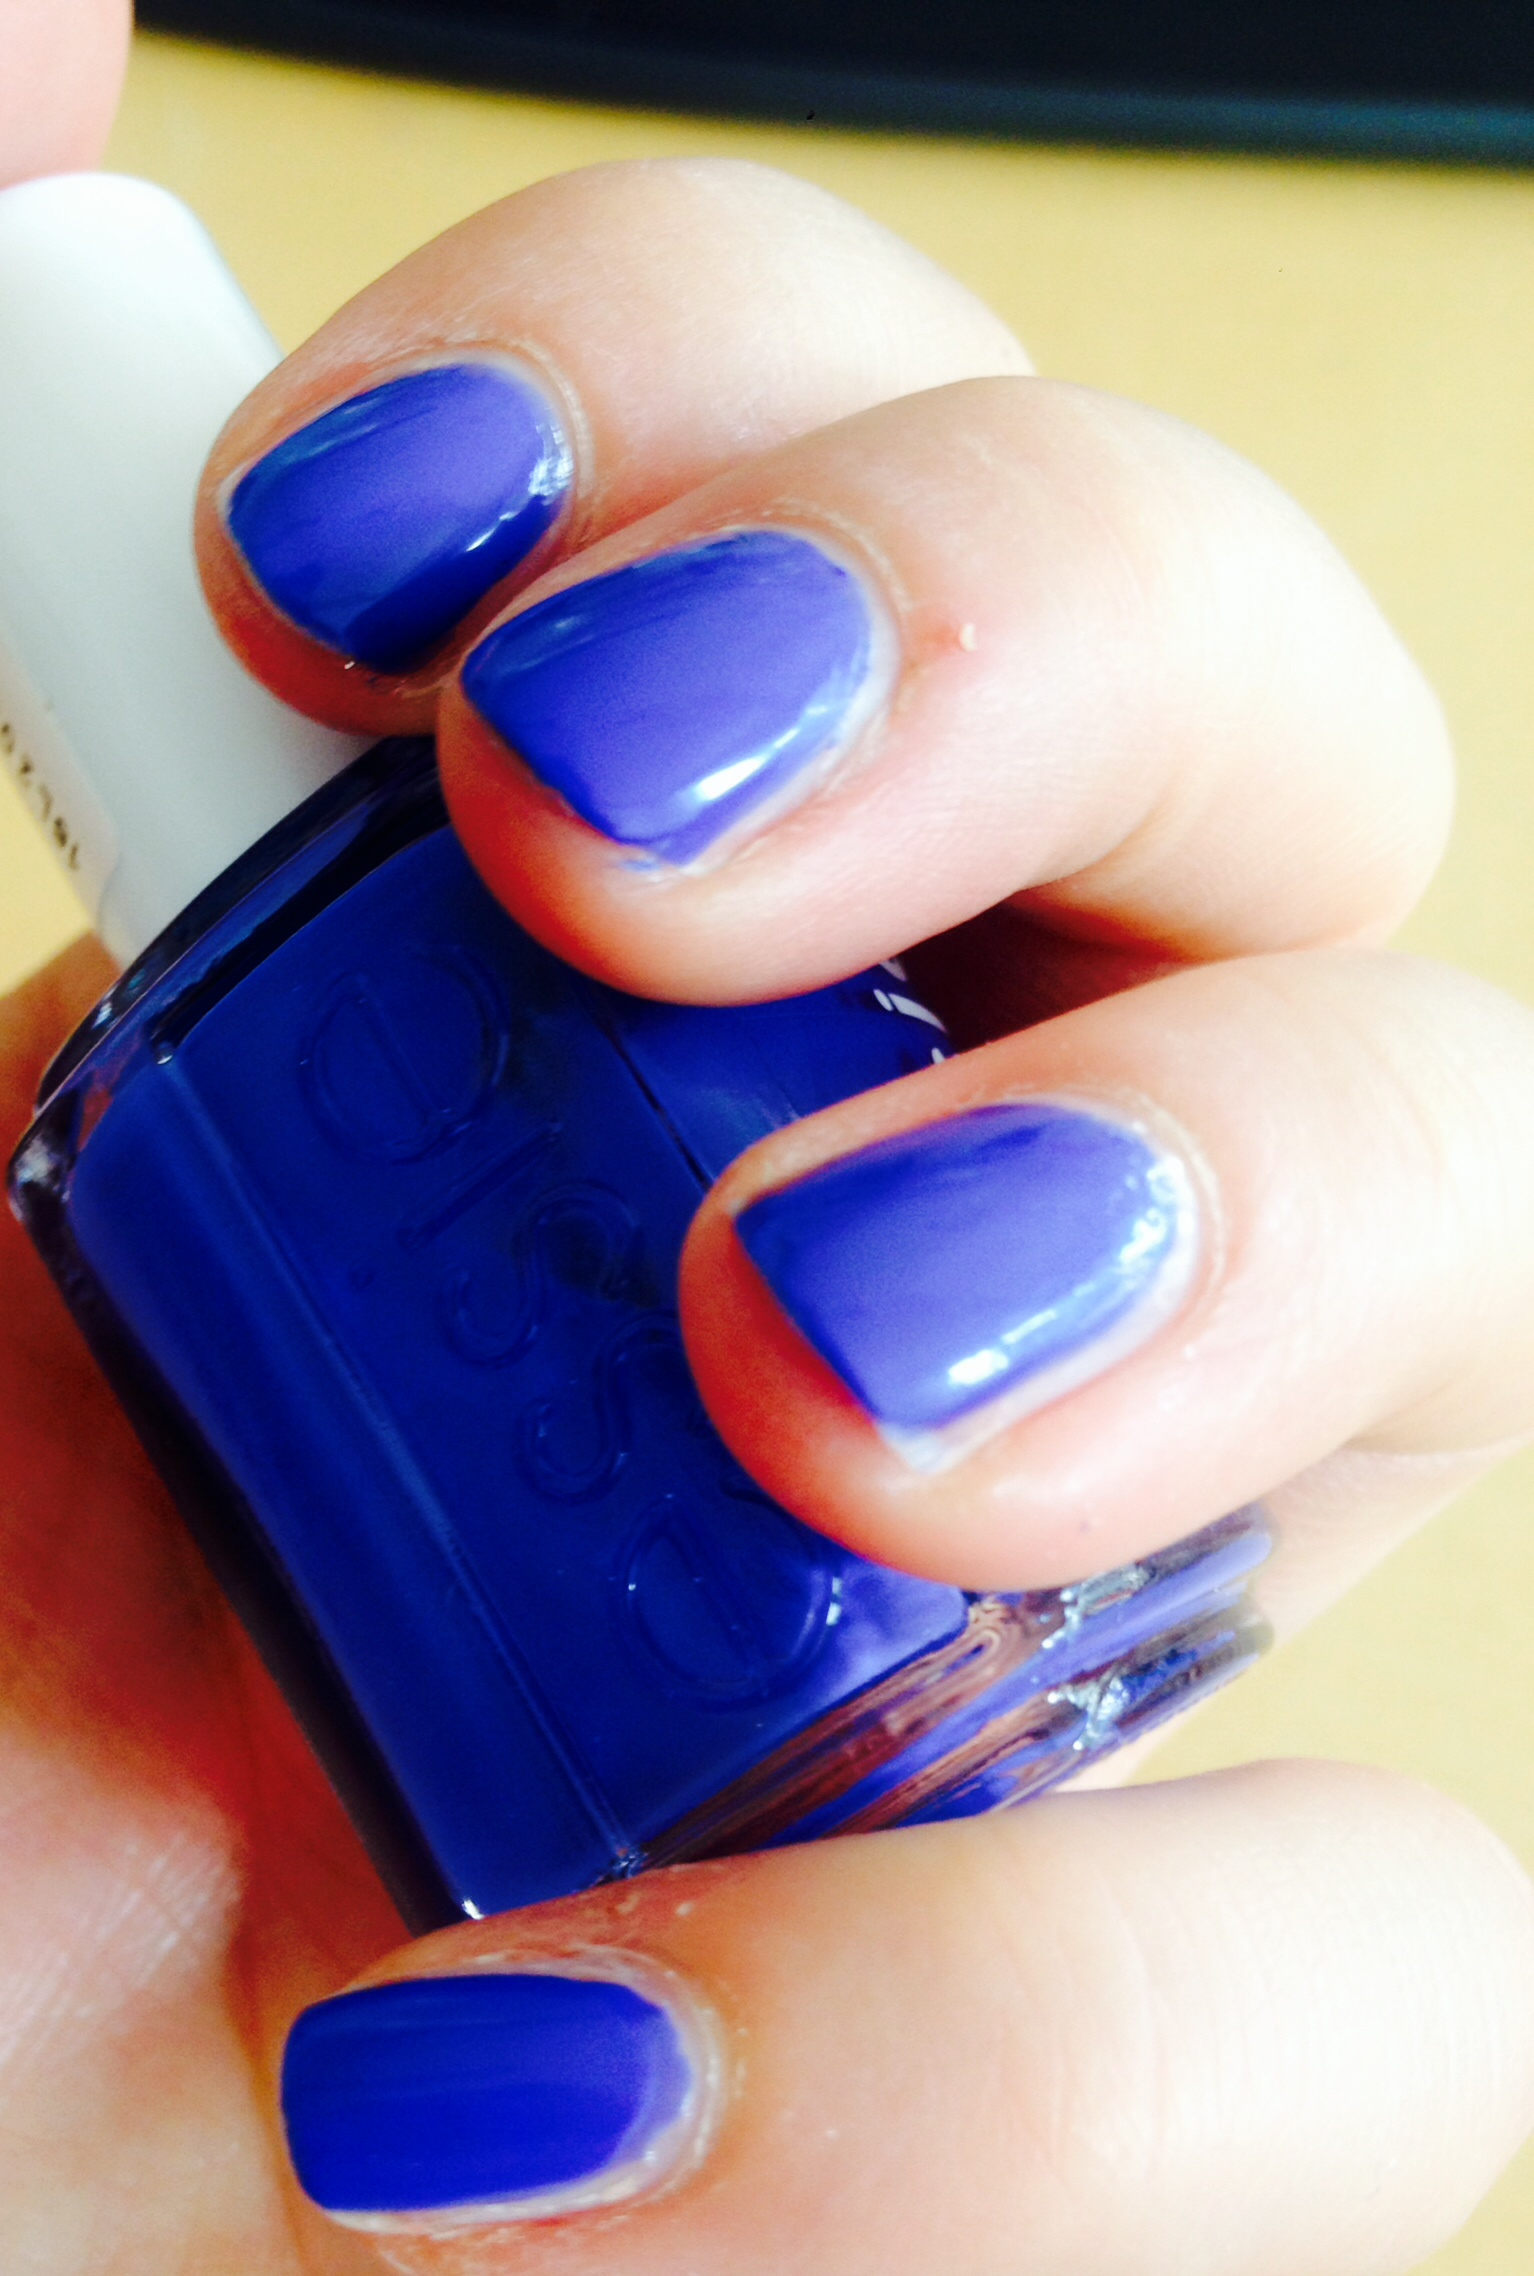 nail polish | ...of pirouettes and concealers